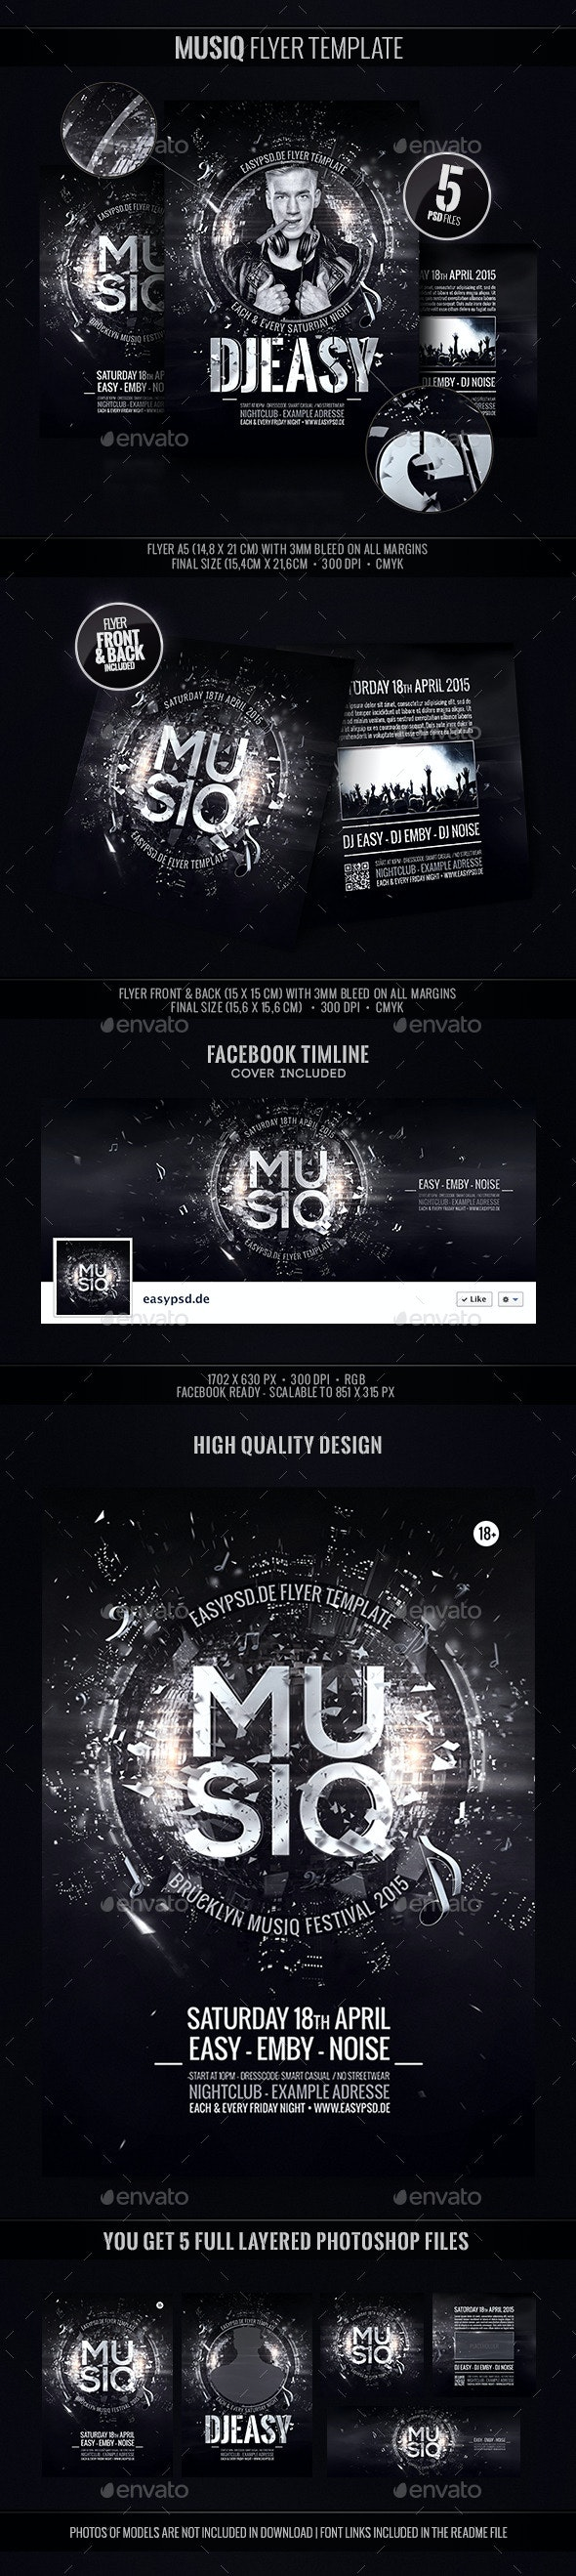 Musiq Festival Template - Clubs & Parties Events